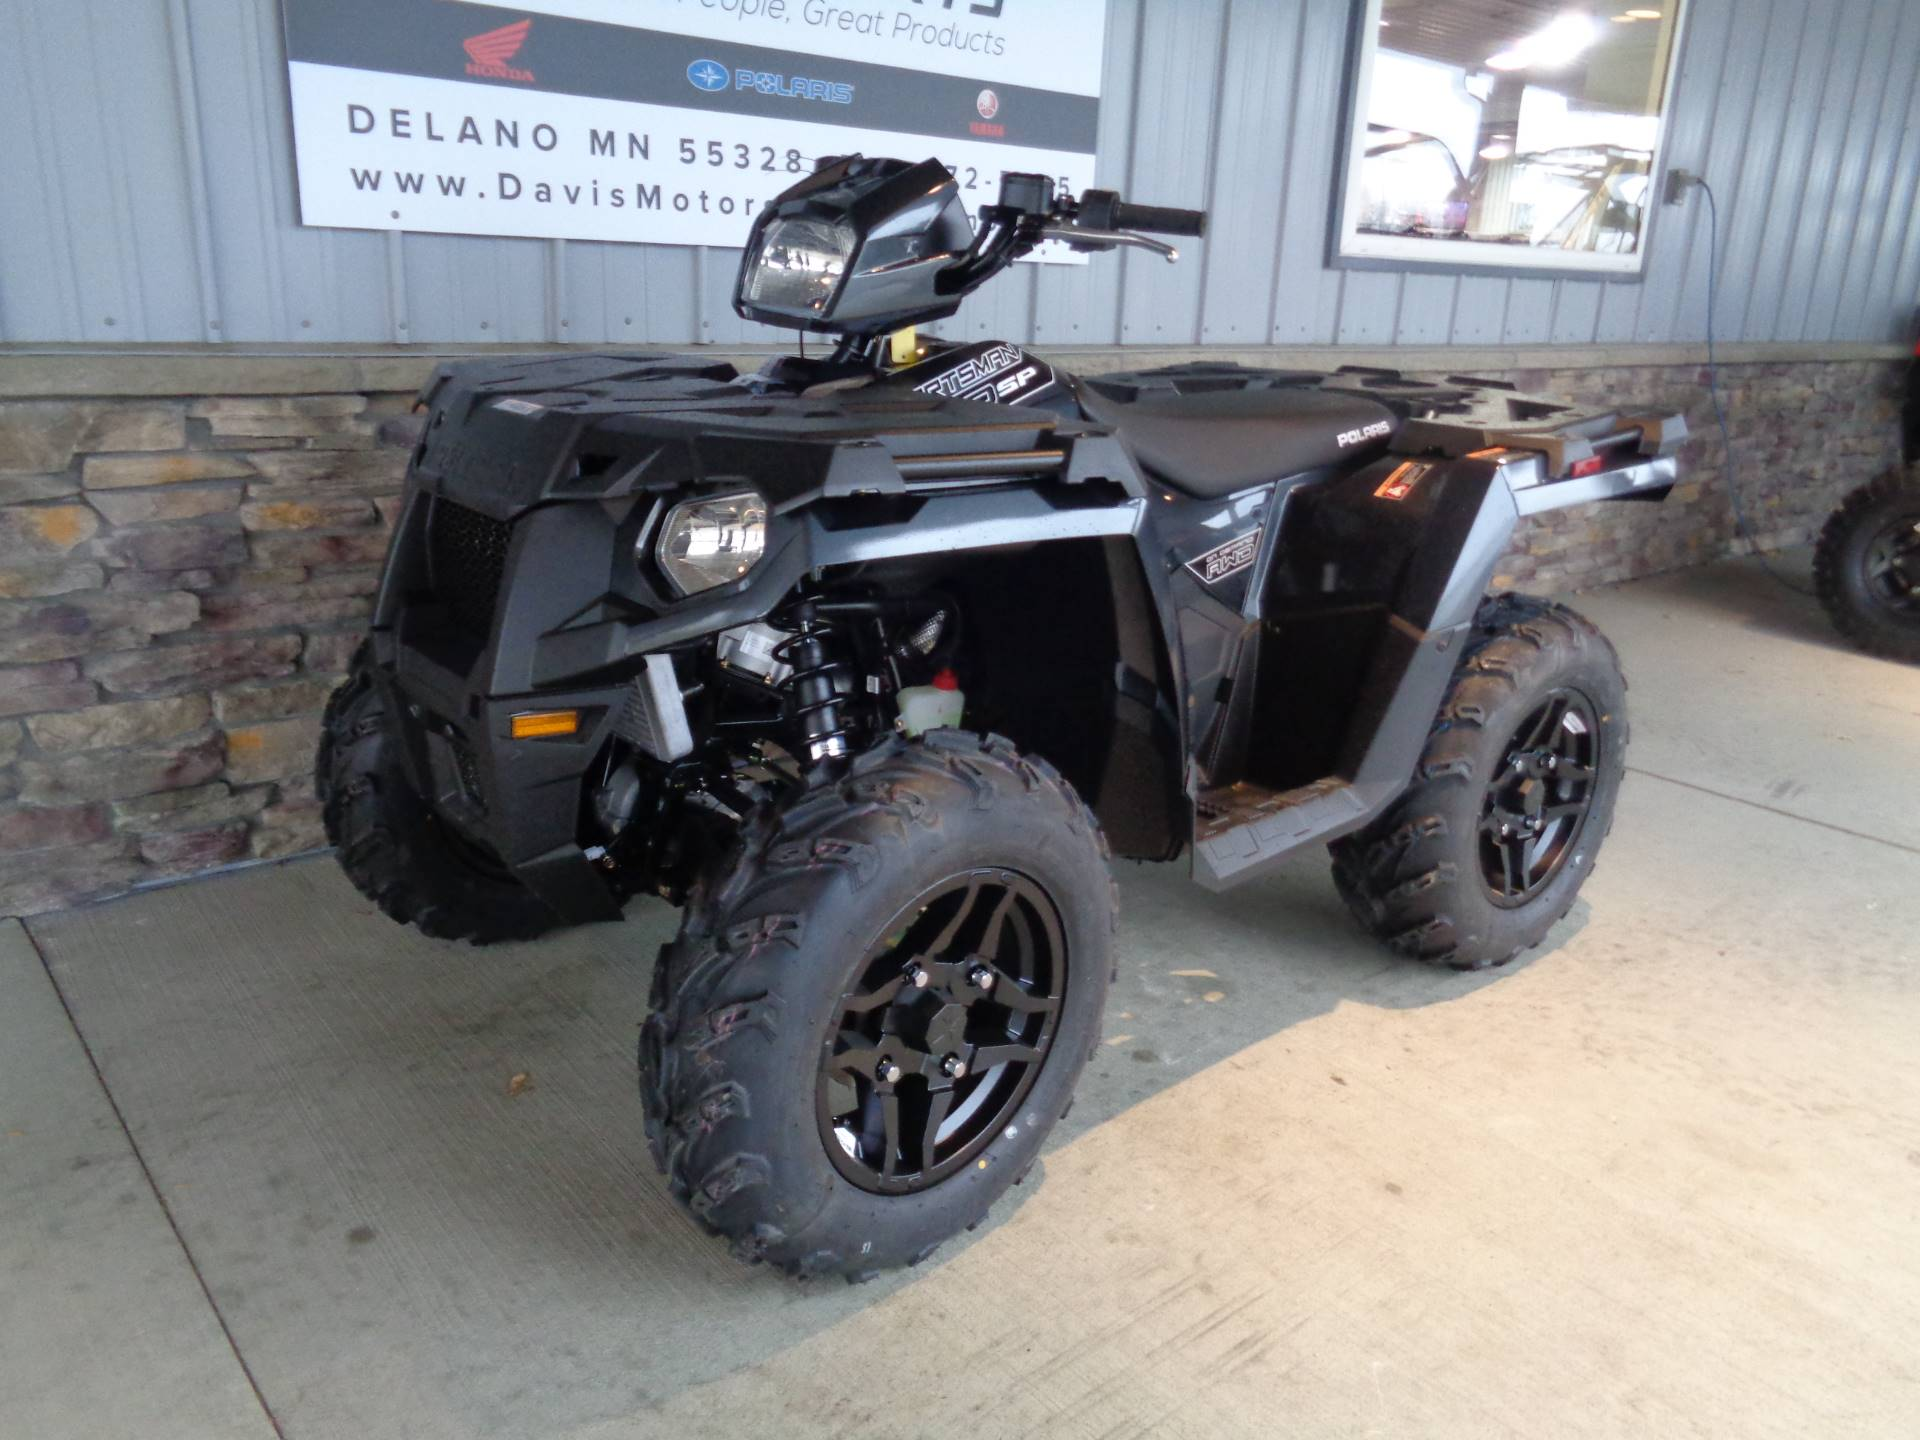 2019 Polaris Sportsman 570 SP in Delano, Minnesota